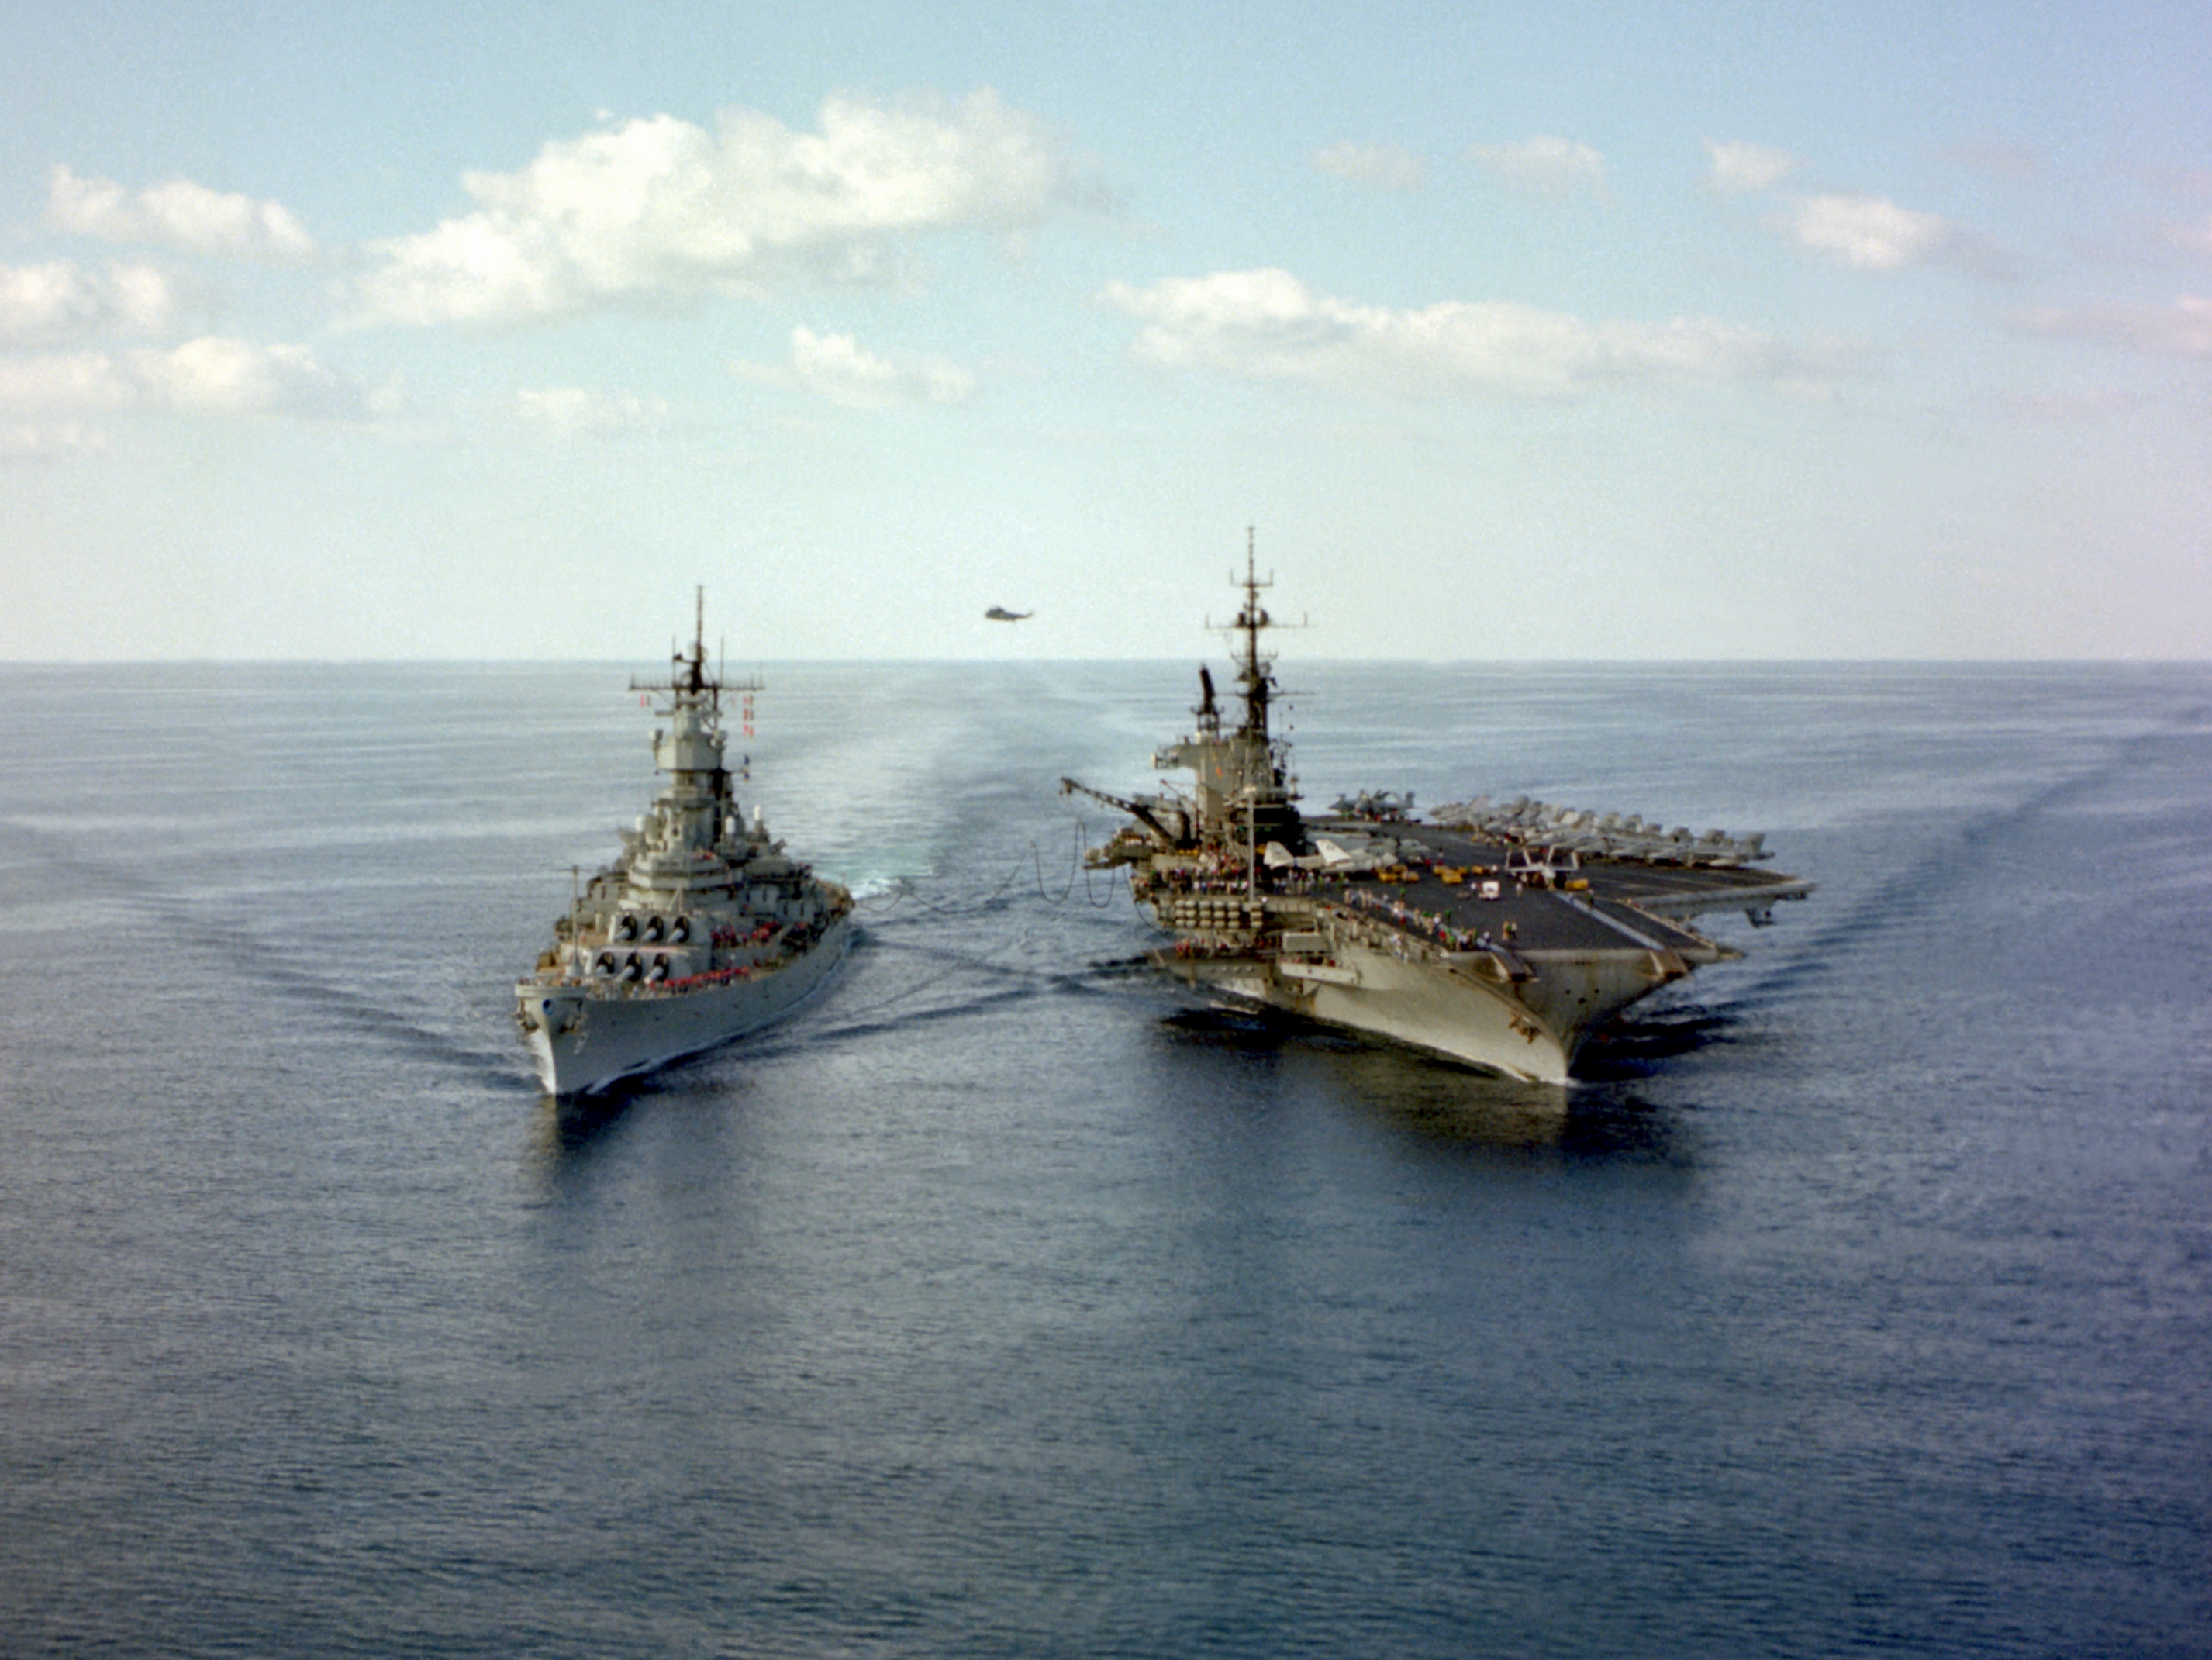 USS Iowa alongside the aircraft carrier USS Midway in 1987.